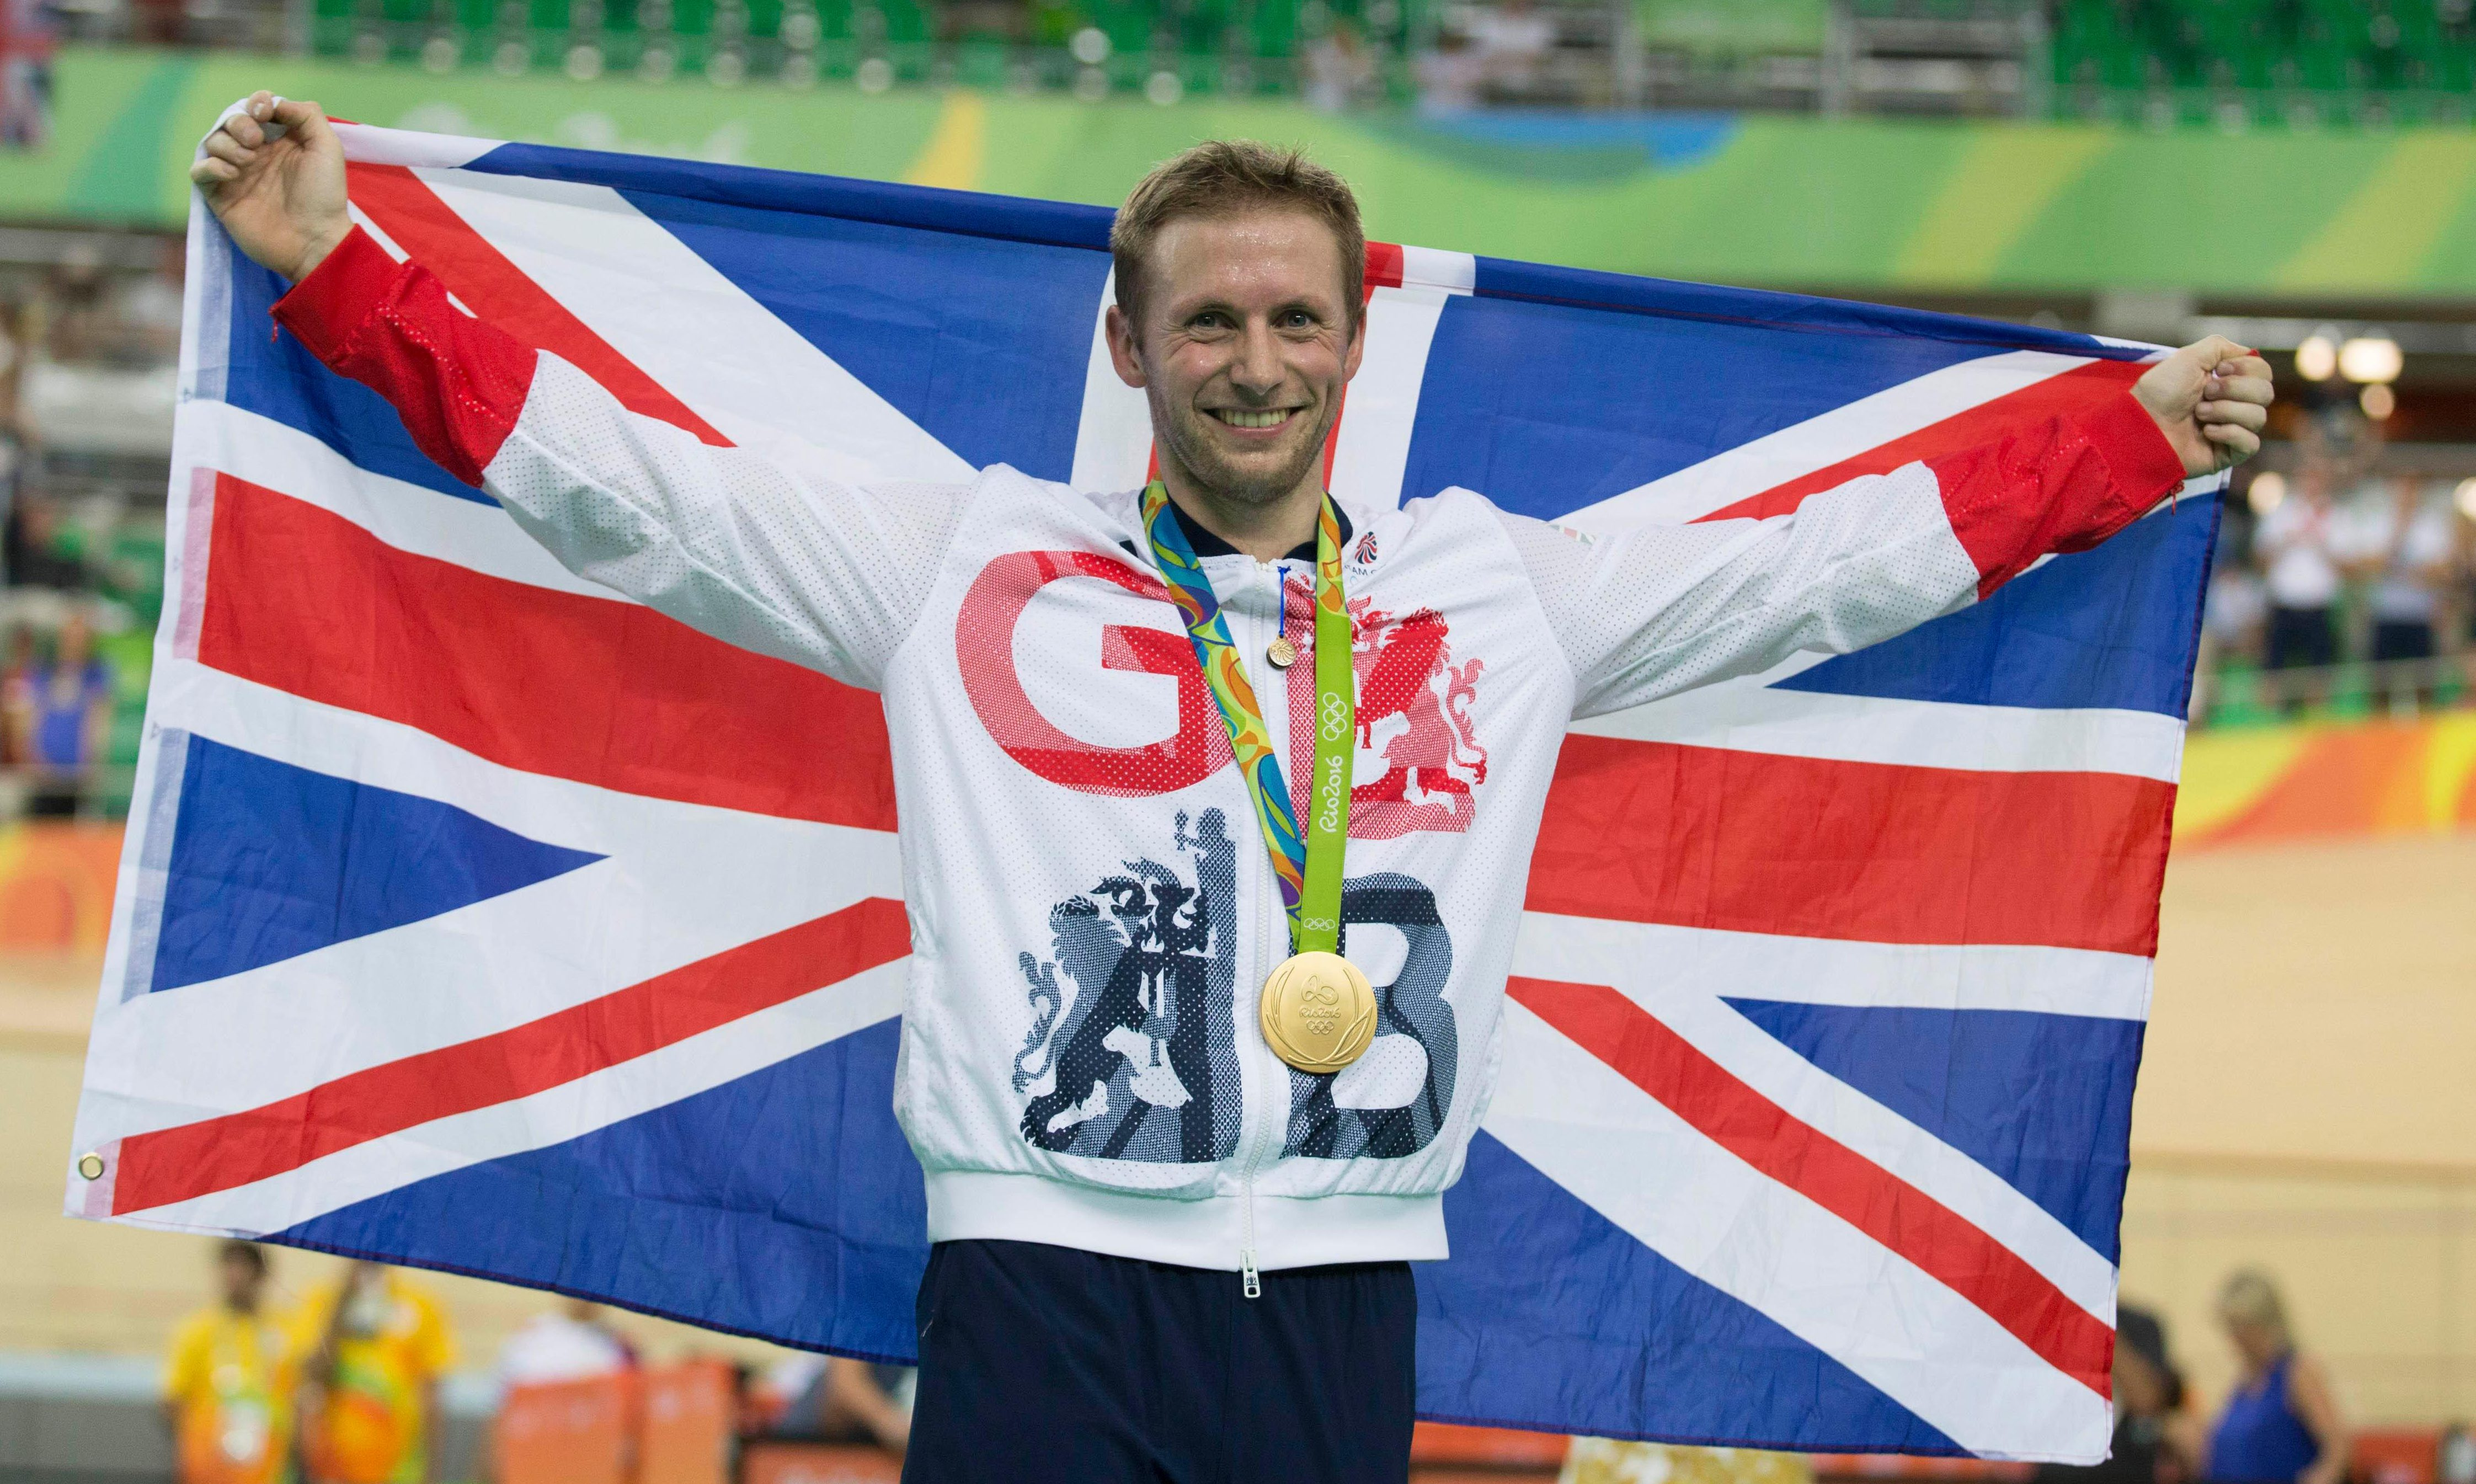 Jason Kenny has the chance to eclipse Chris Hoy's medal record if he rides at the Tokyo 2020 Olympics